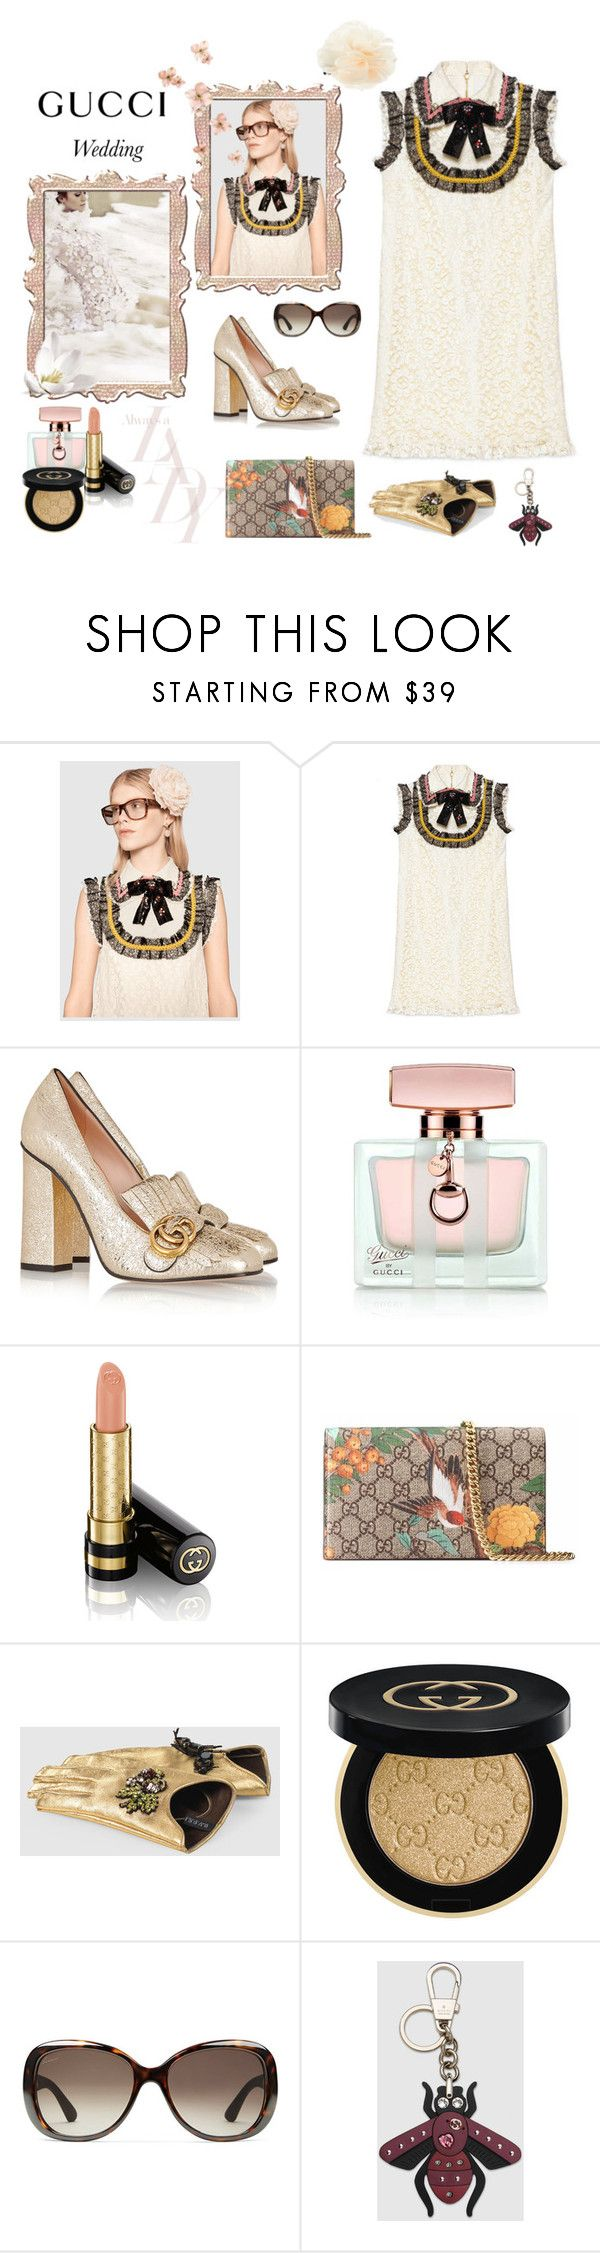 """""""May, wedding season kick off- the Gucci girl guest"""" by juliabachmann ❤ liked on Polyvore featuring Gucci and Accessorize"""